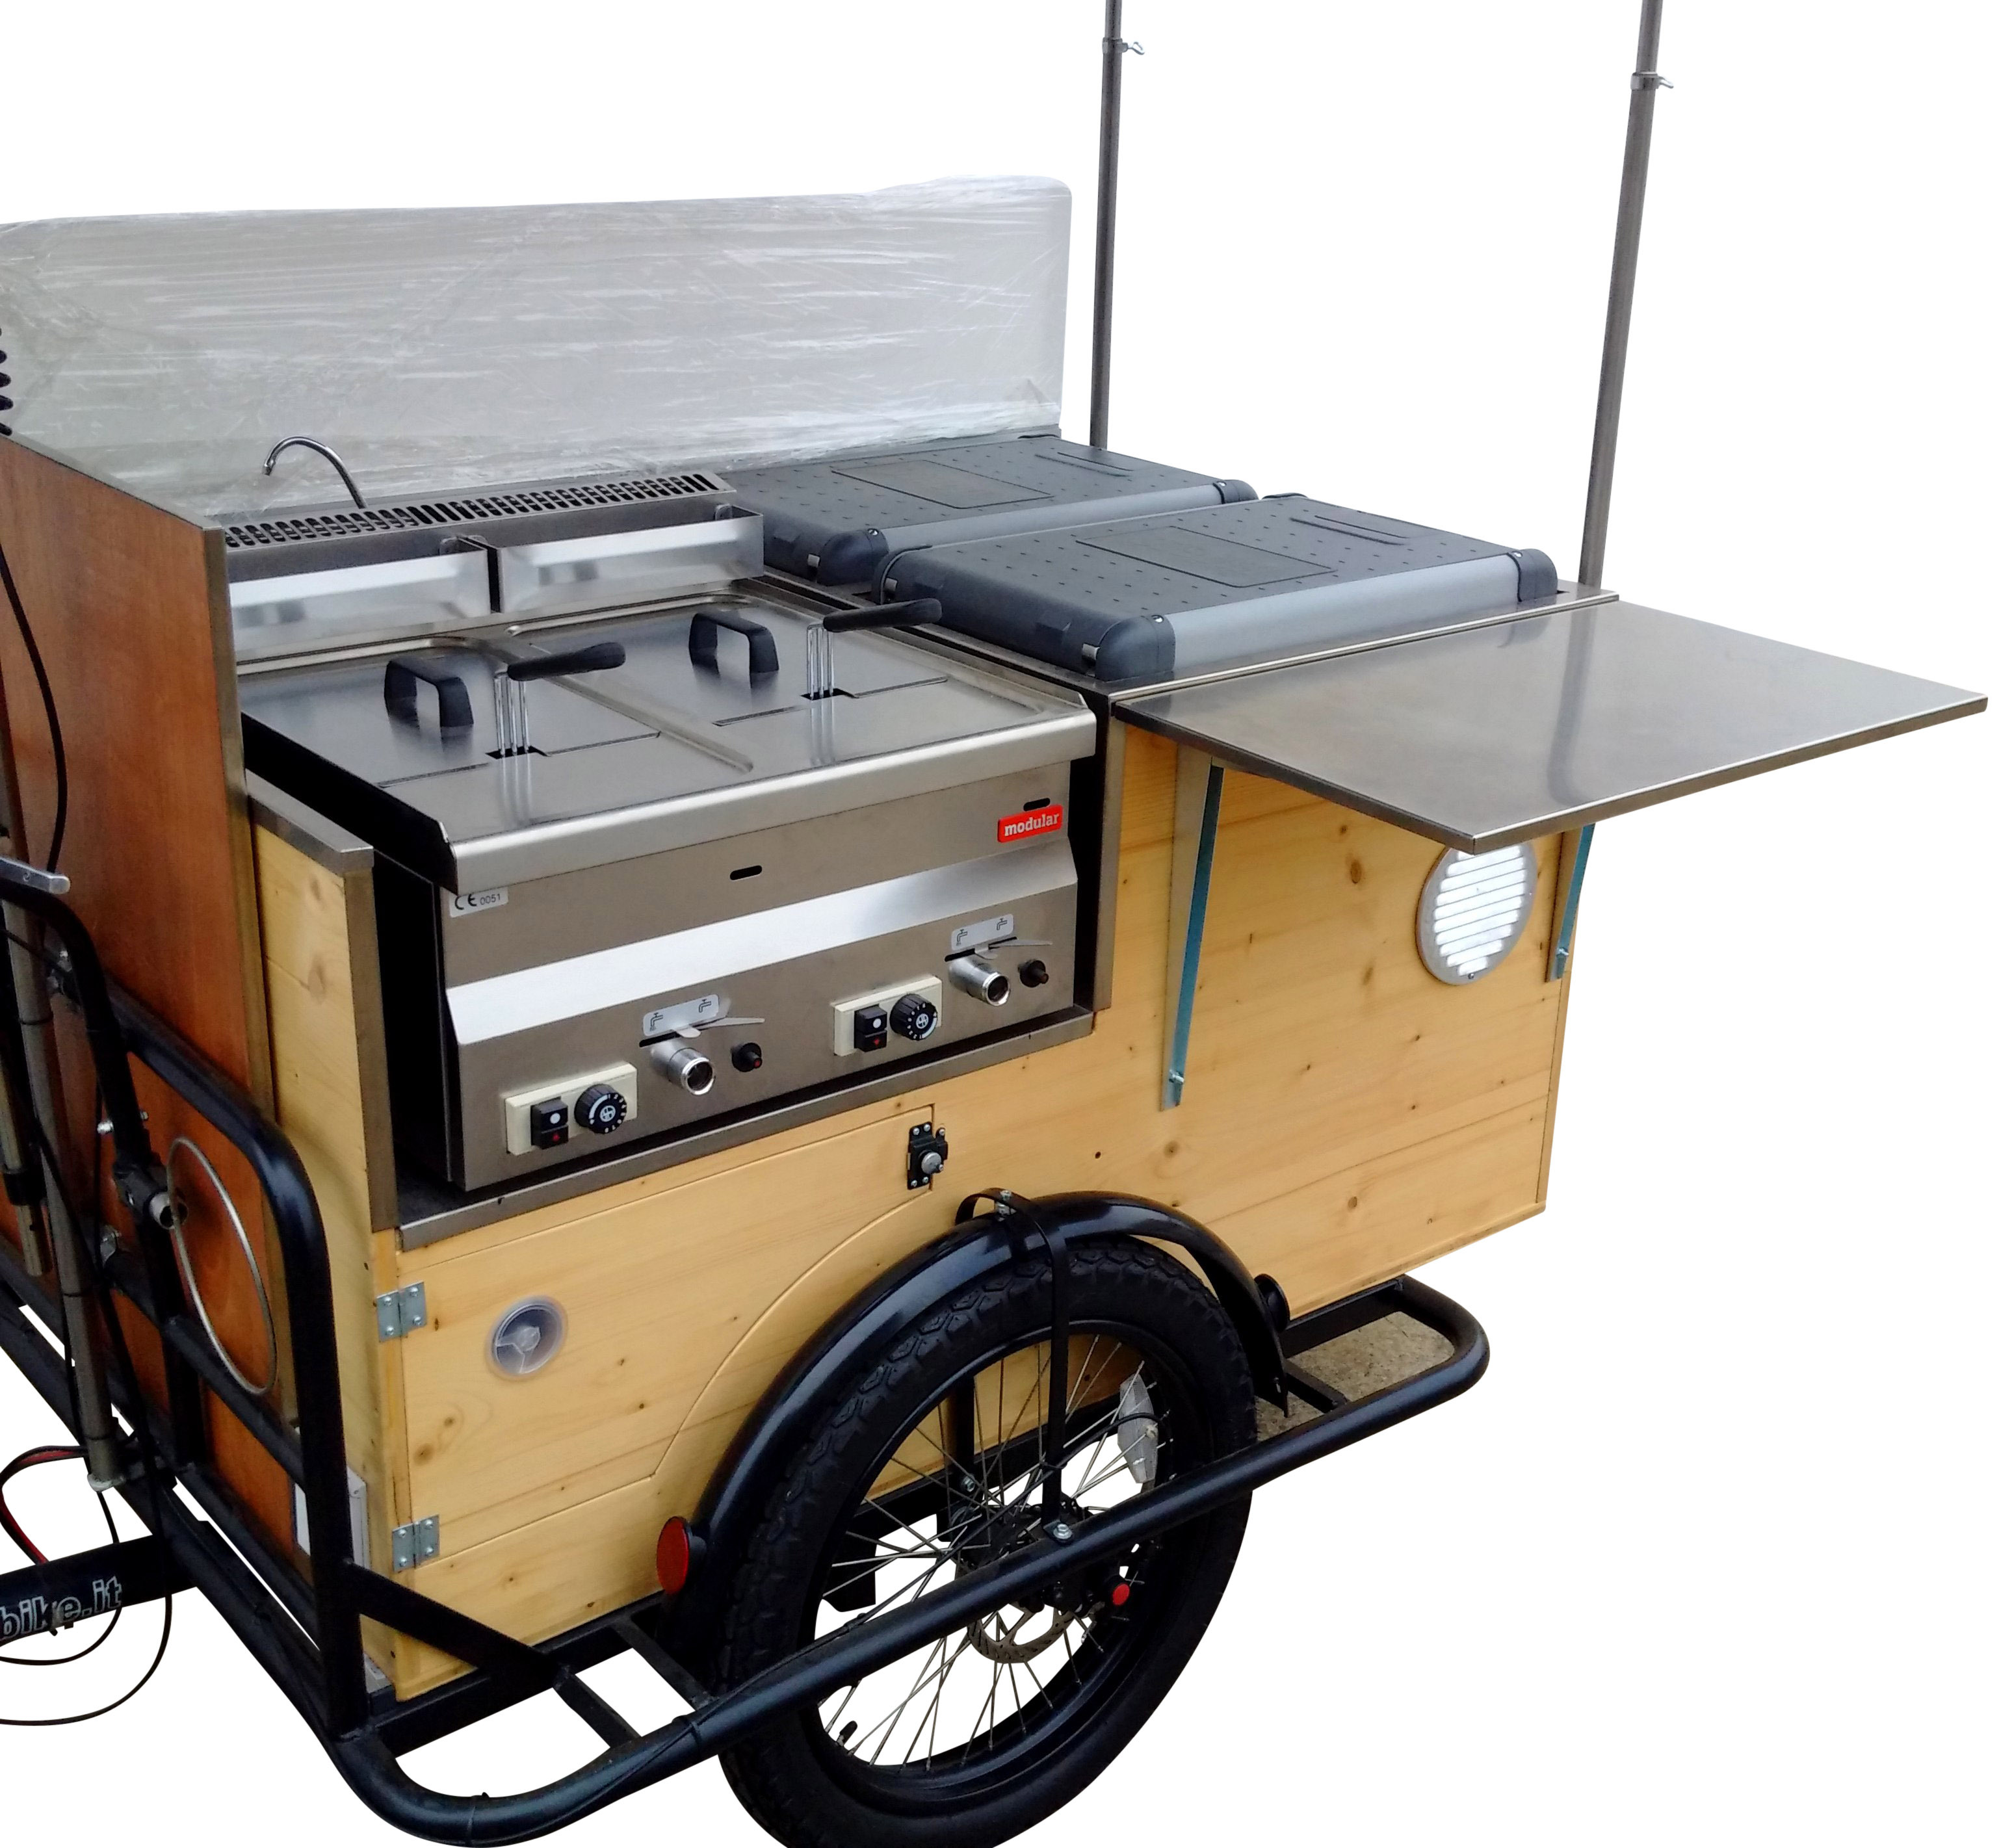 STREET_FOOD_BIKE_QUADRA_FRIGGITRICE_IN_LEGNO_TRICICLO_CARGO_BIKE_4